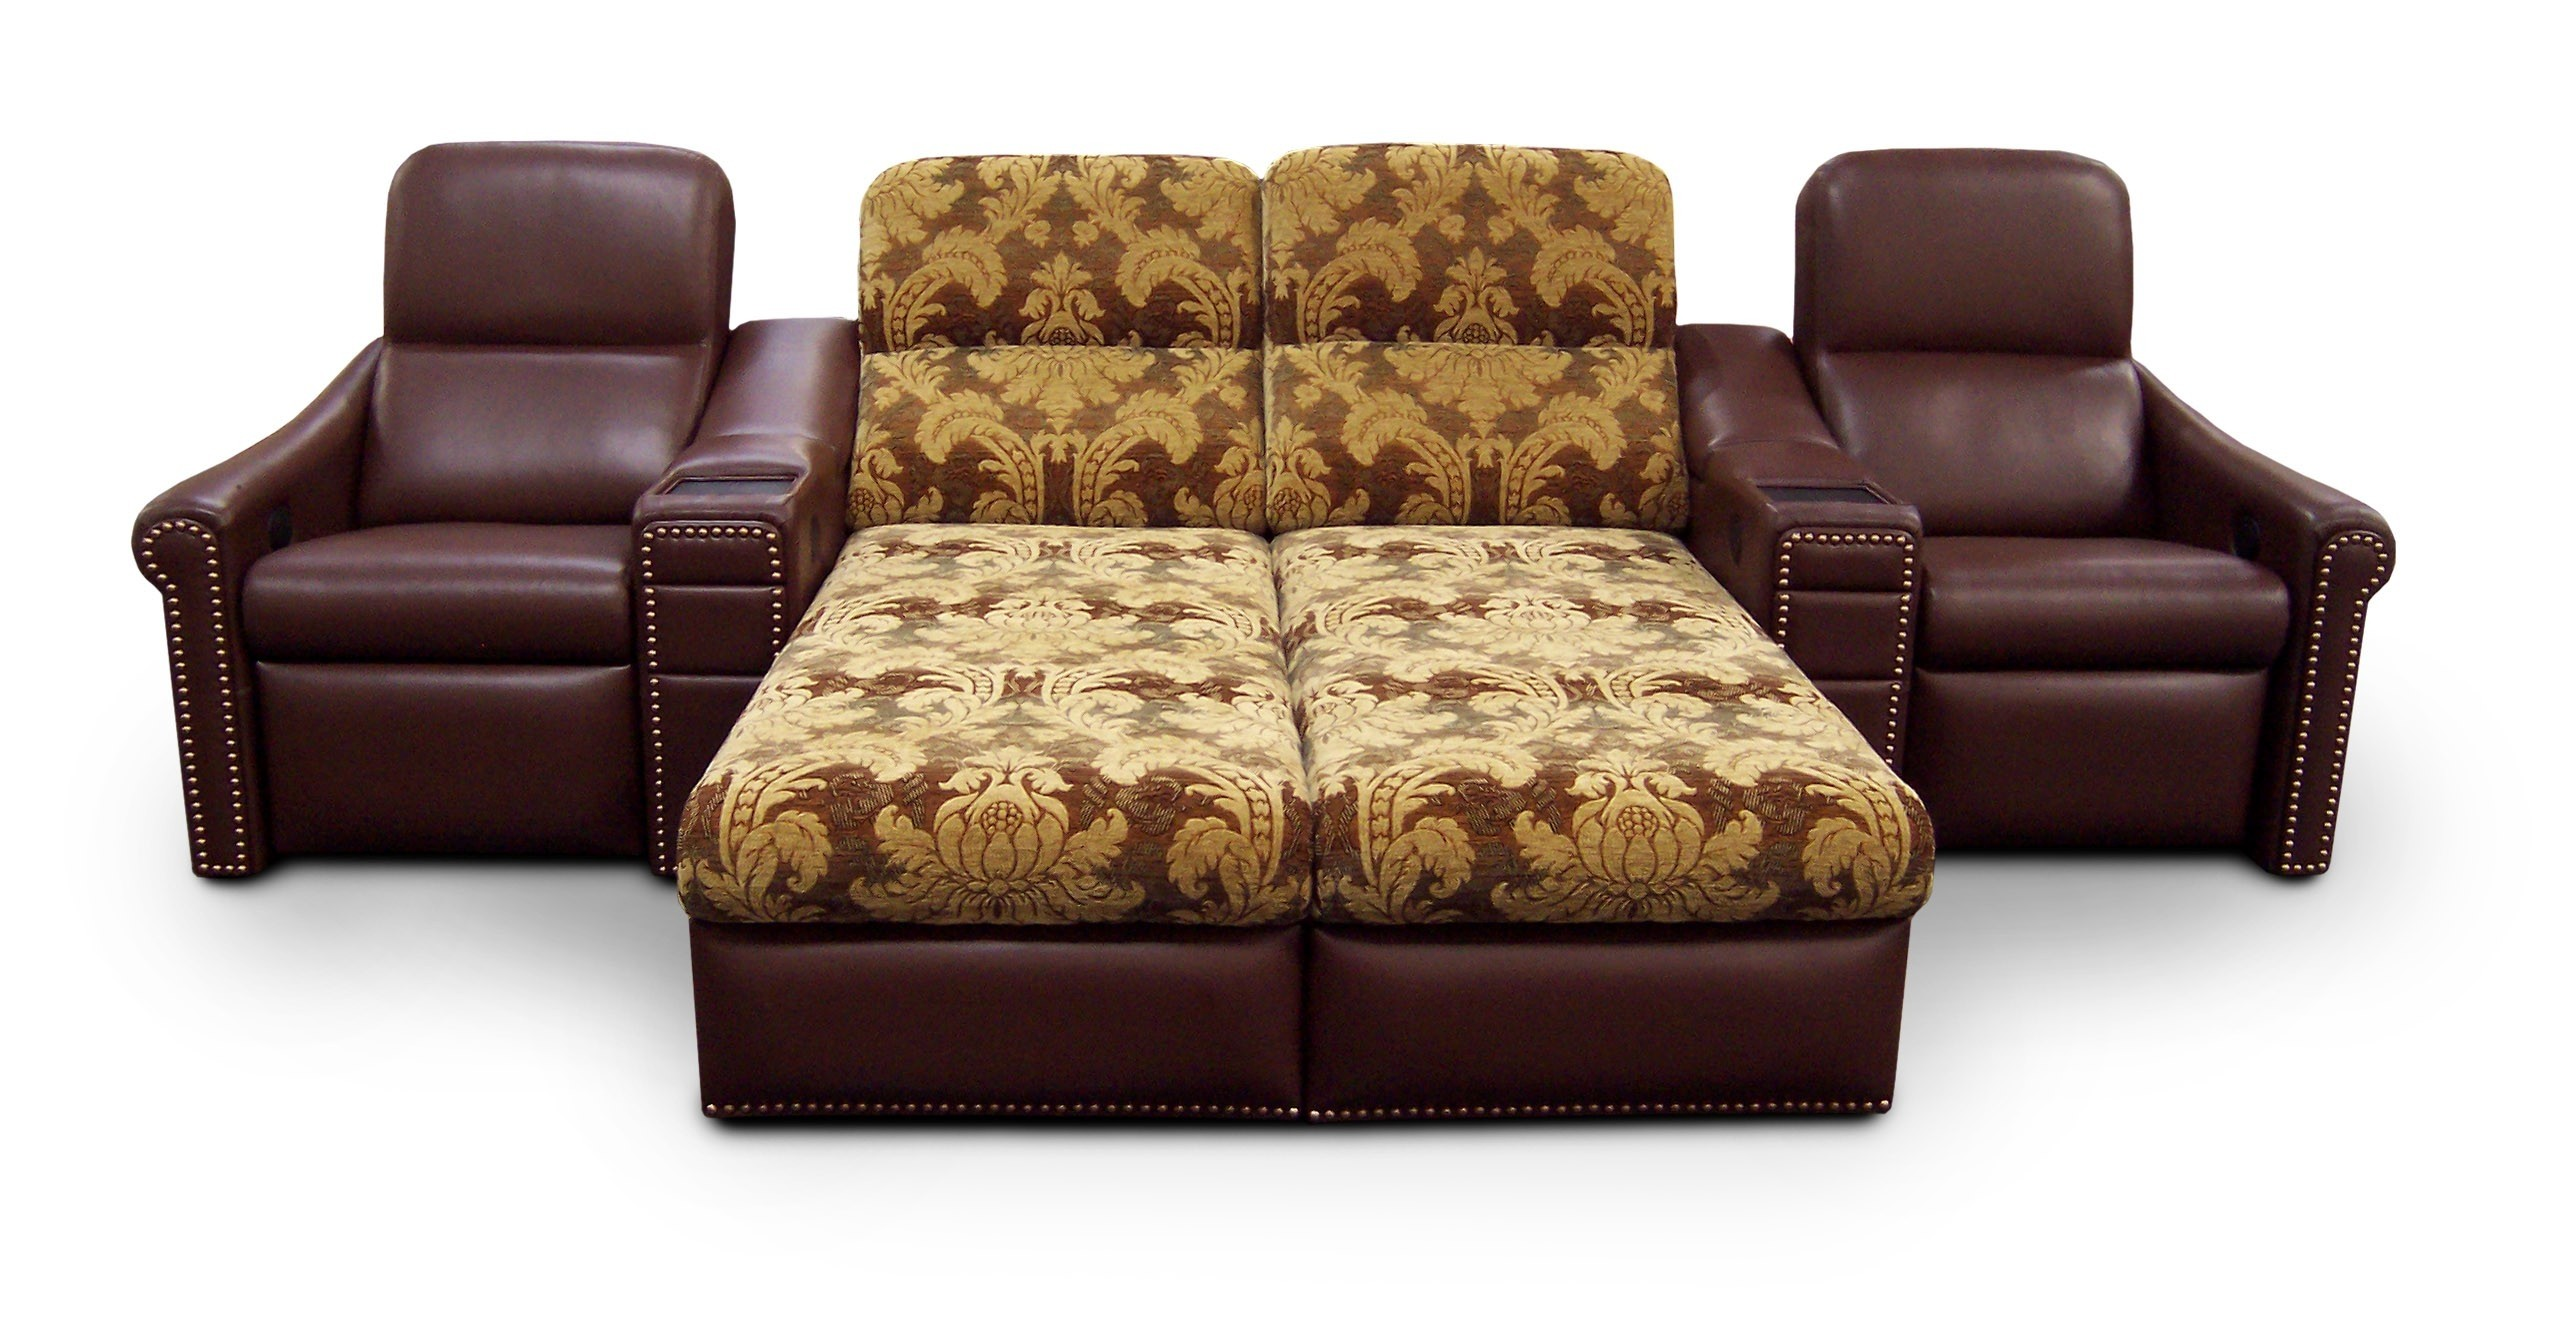 Awesome Double Chaise Lounge sofa Collection – Modern Sofa ...